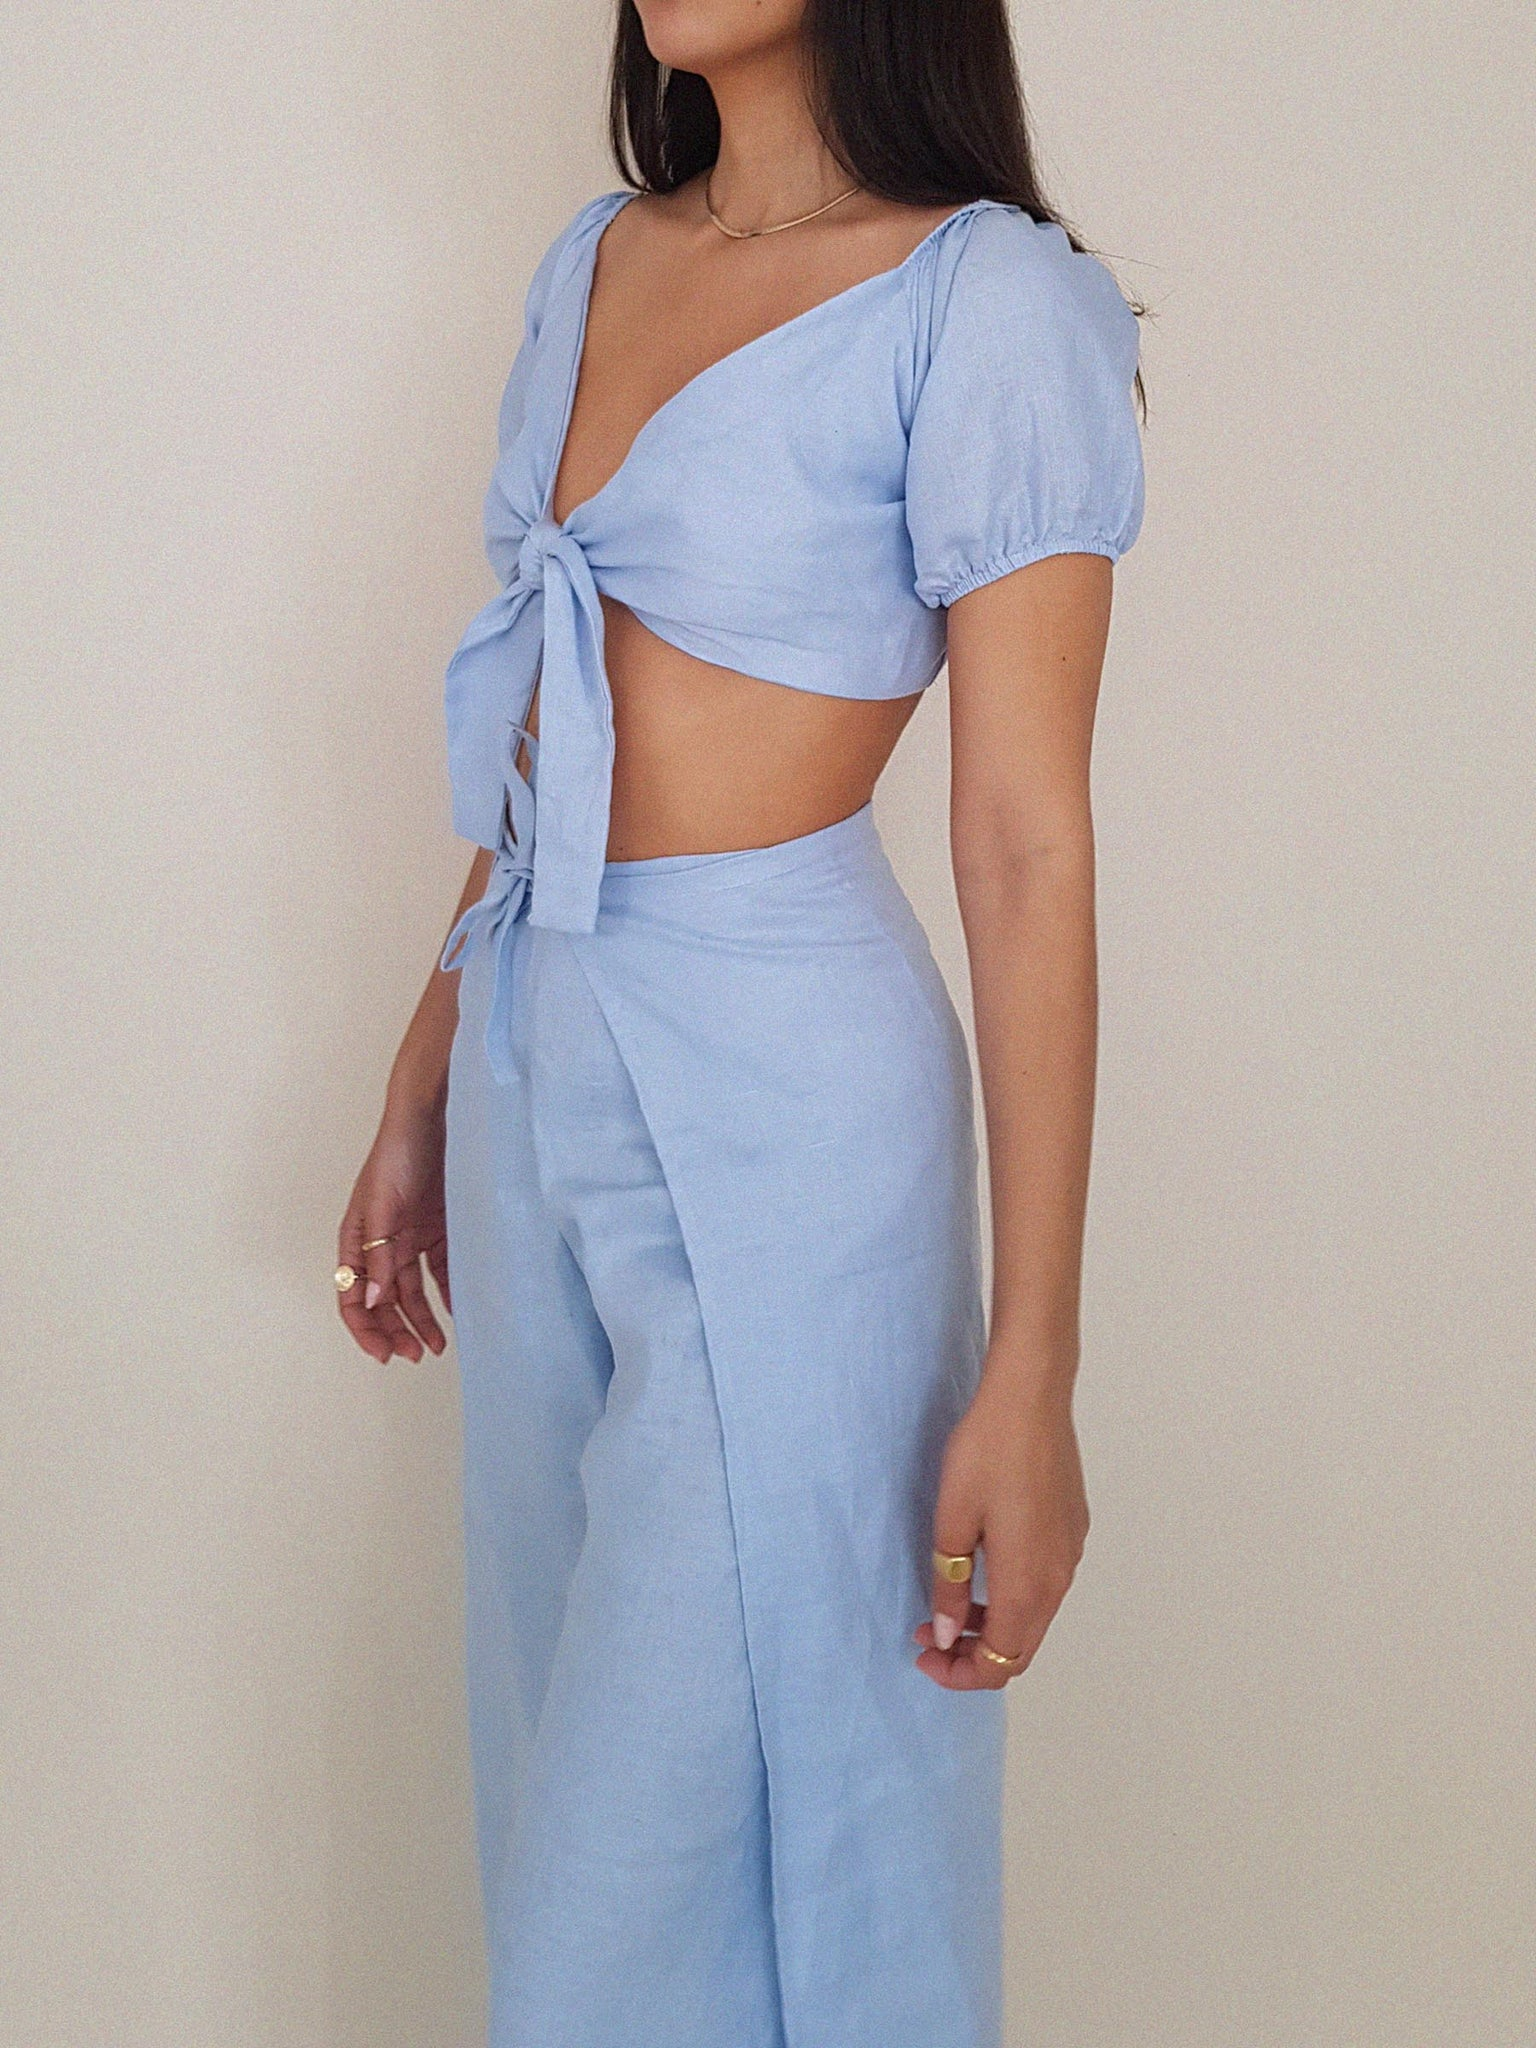 BLUE LOTUS TOP LINEN // handmade